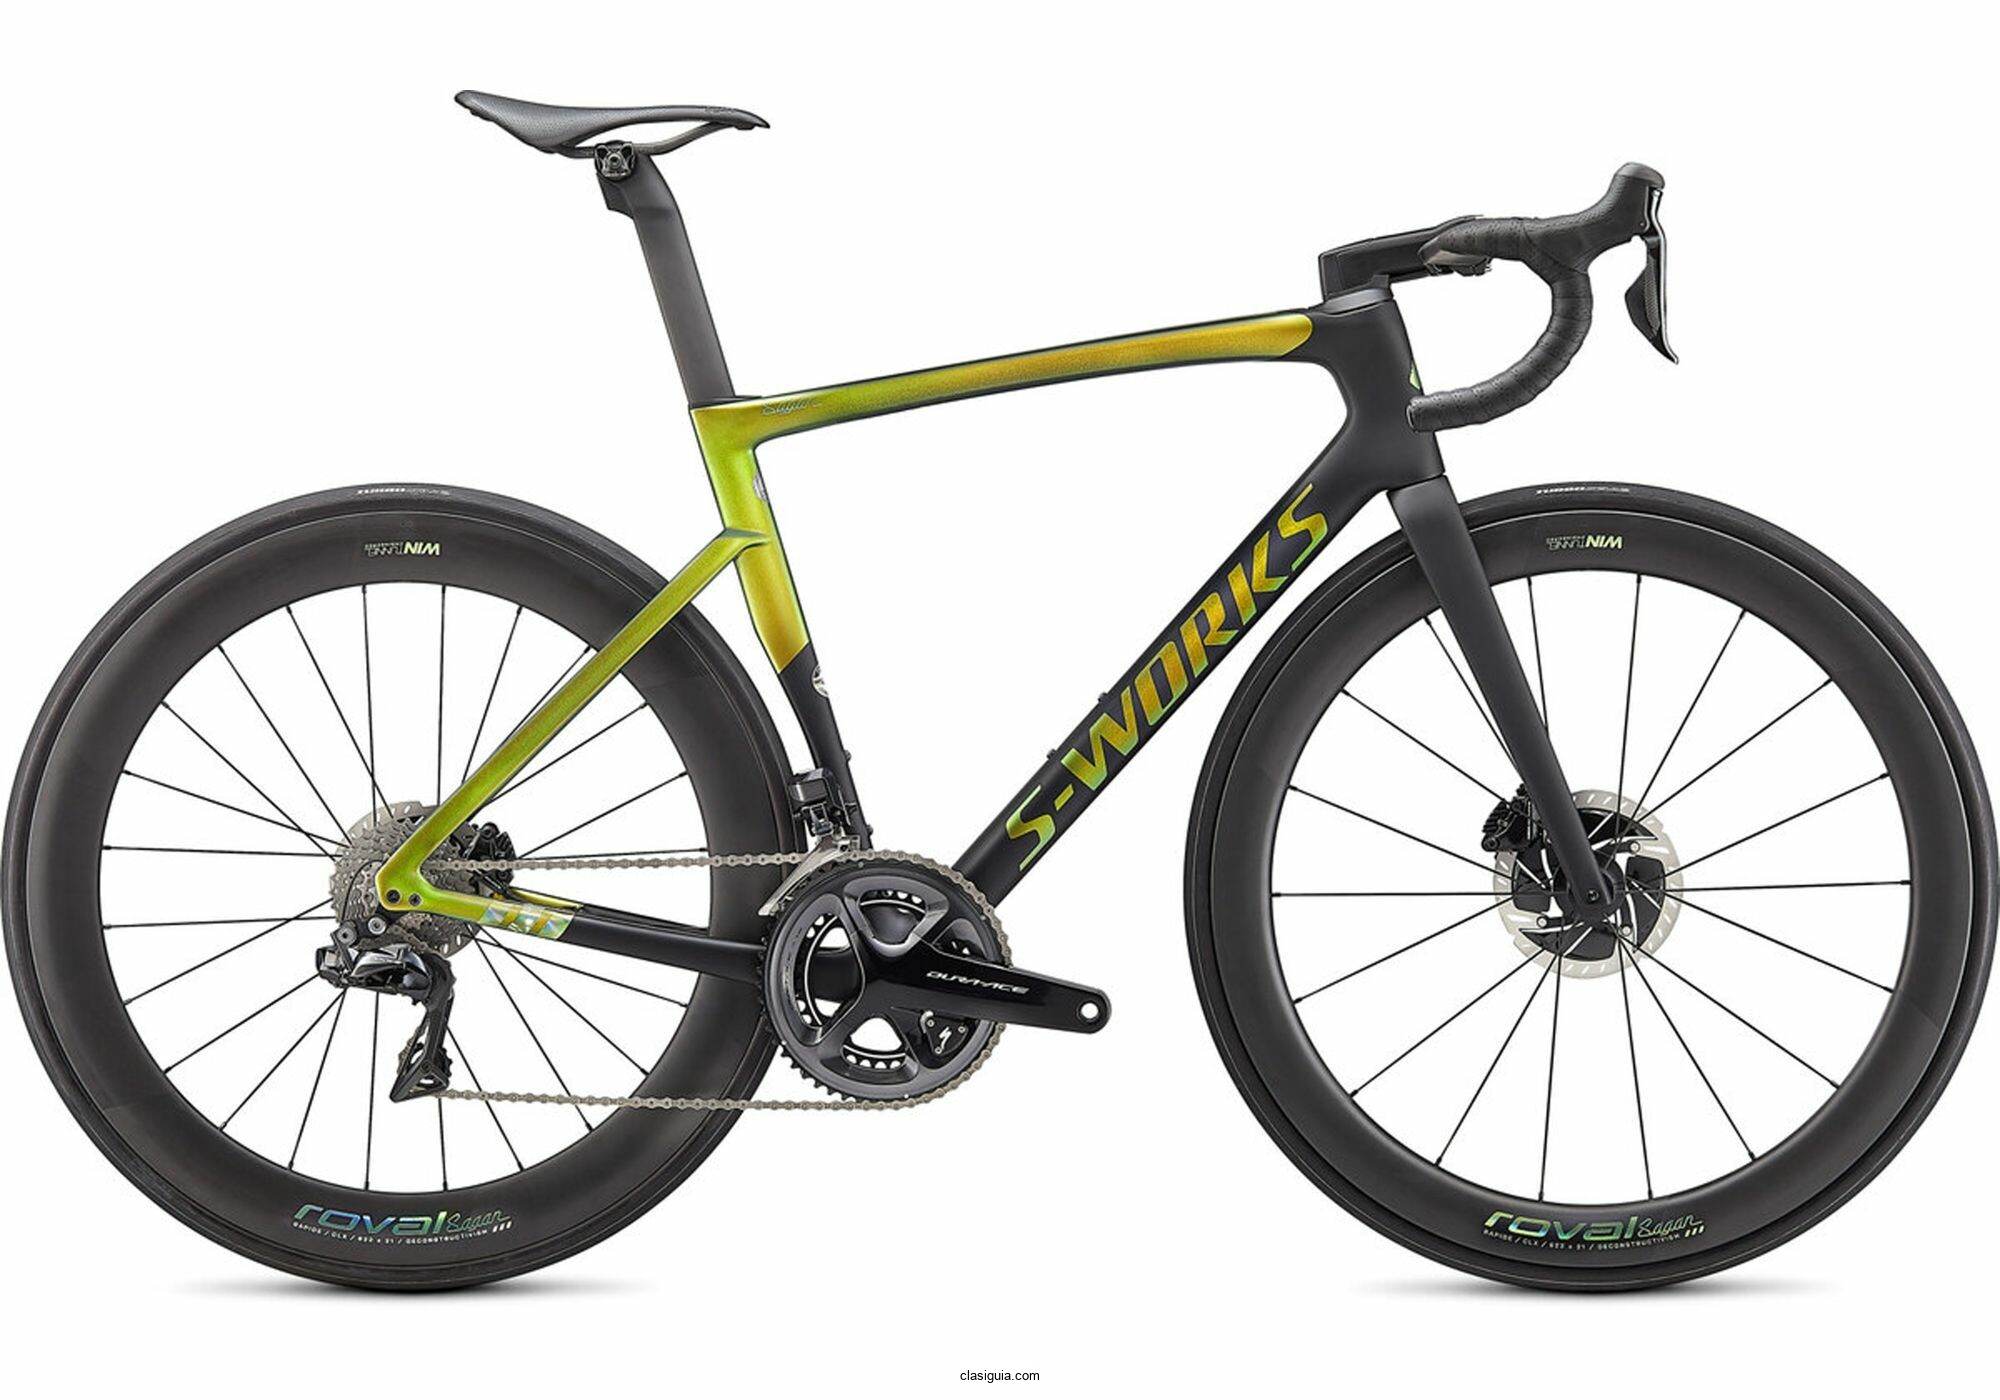 2021 - Specialized S-Works Tarmac SL7 Sagan Collection Road Bike (RUNCYCLES)